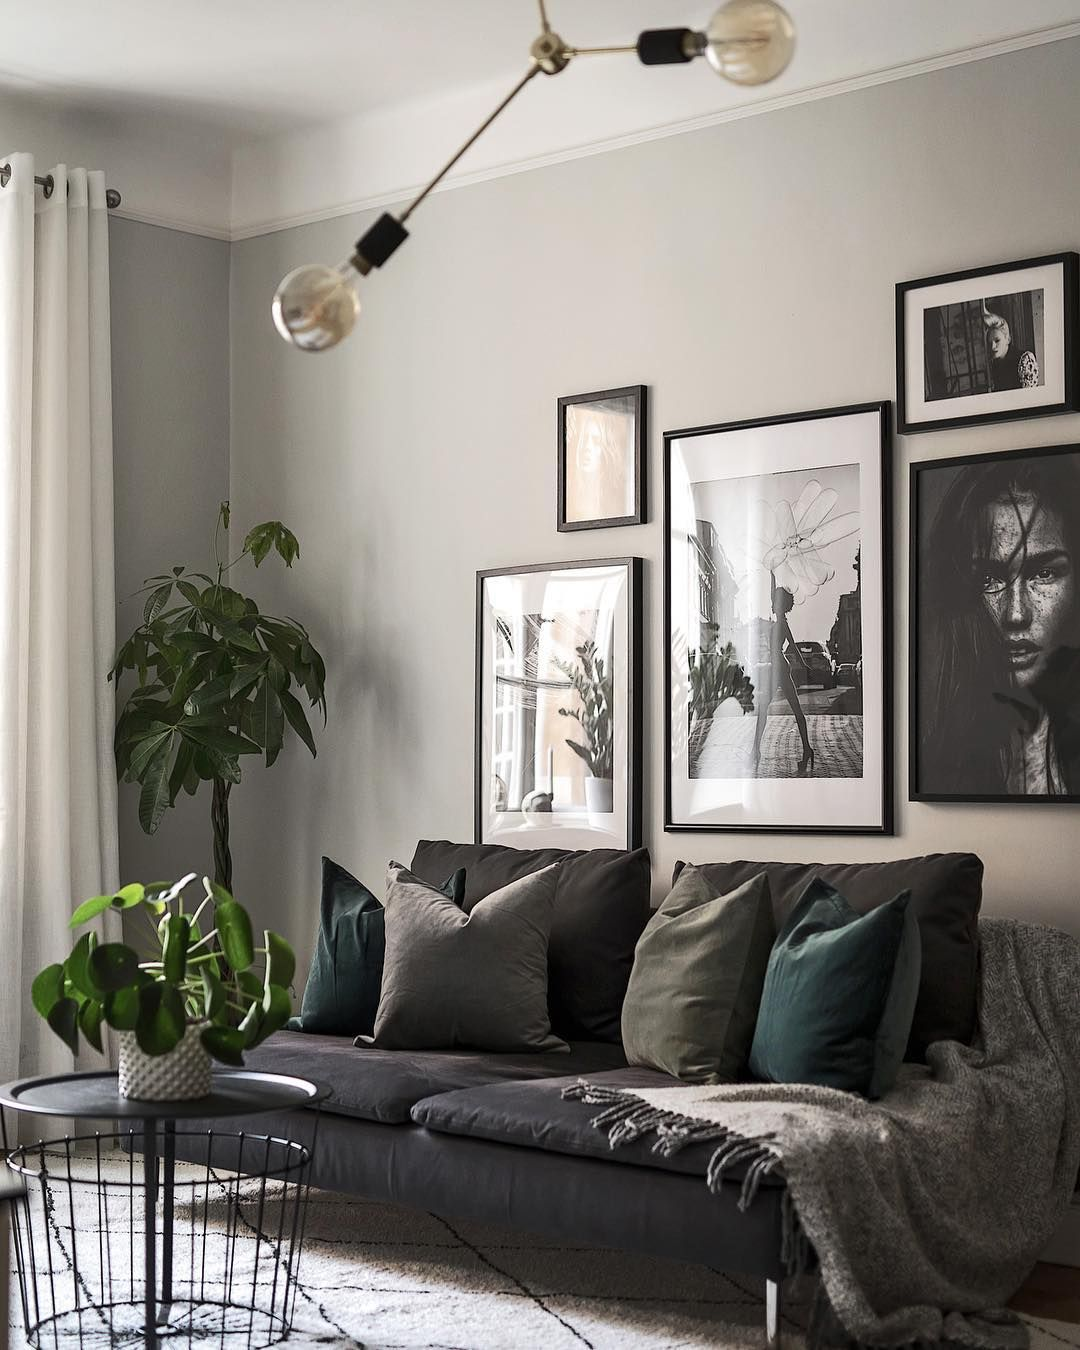 Posters From Desenio Desenio Styling Scandinavianhomes Photo Kronfoto Living Room Grey Gray Living Room Design Living Room Green